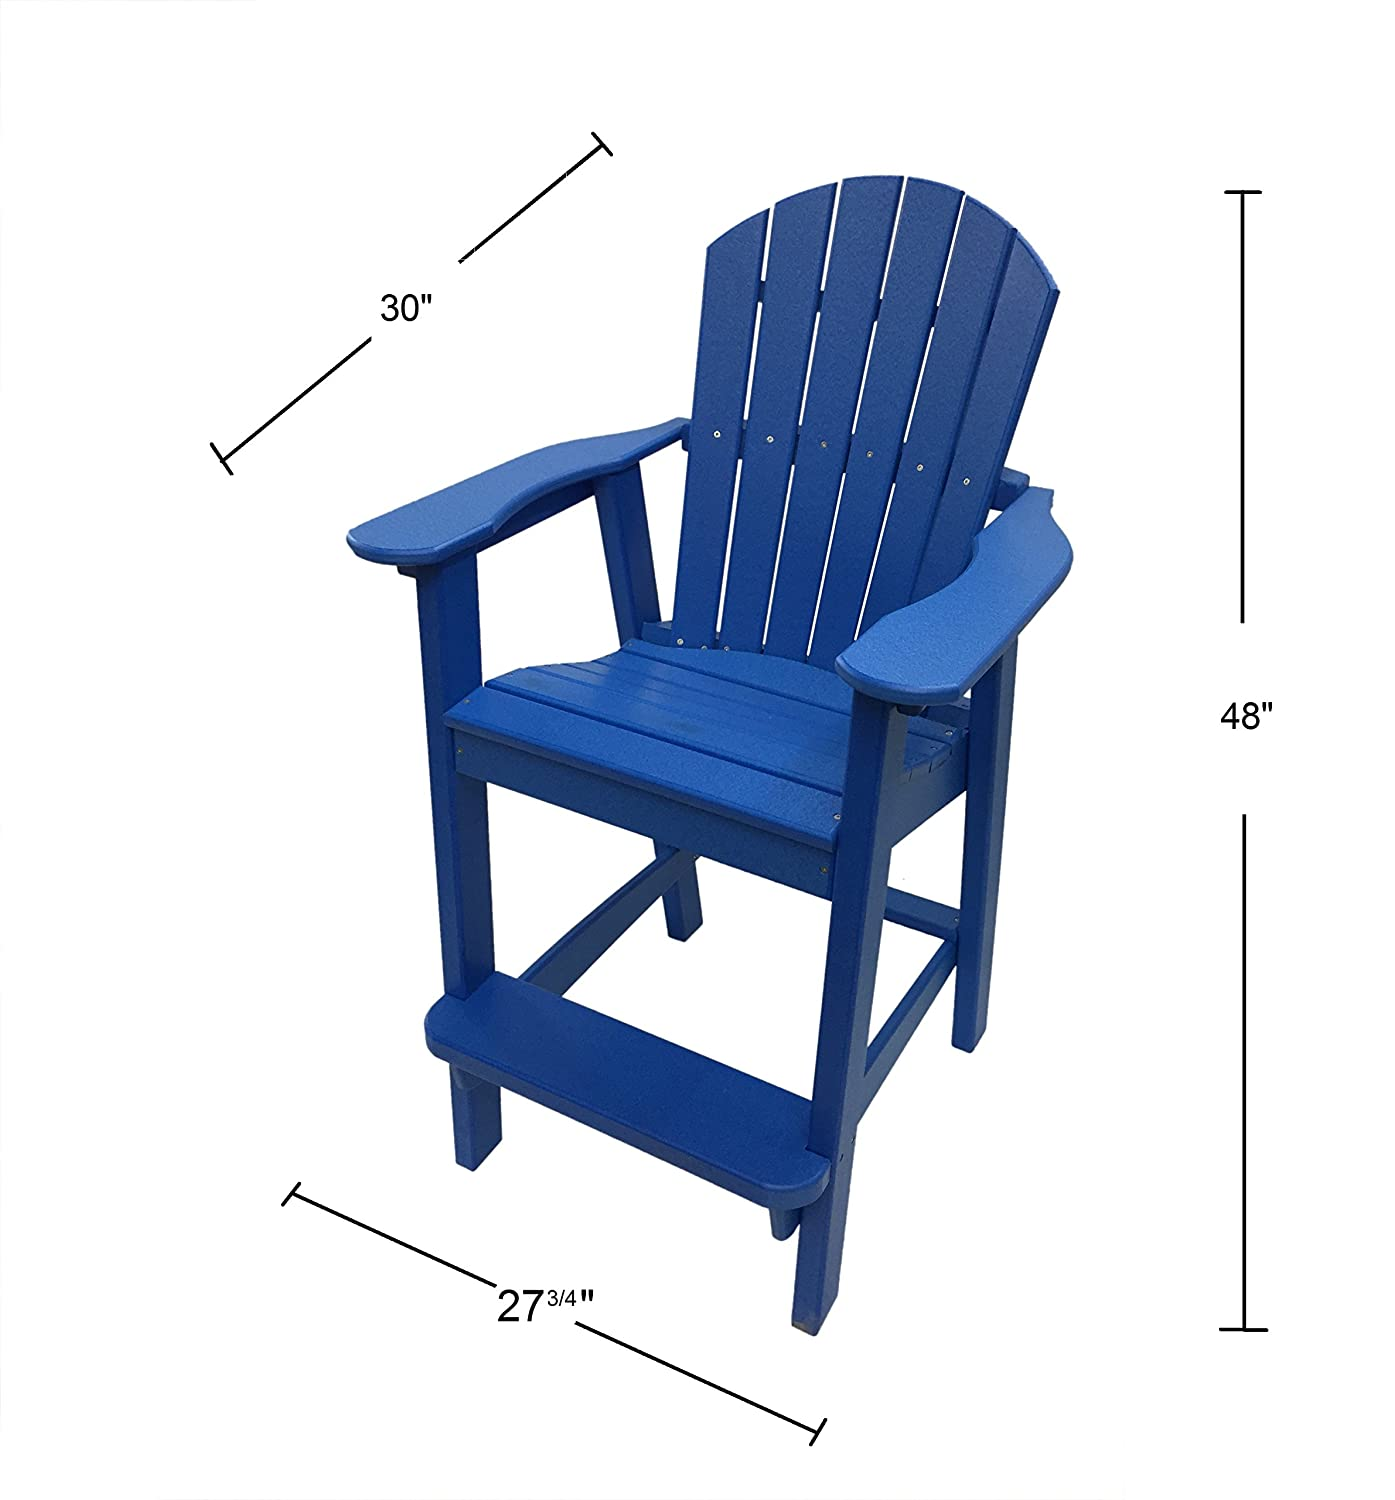 Phat Tommy Recycled Poly Resin Balcony Chair Settee Durable and Adirondack Patio Furniture, Blue